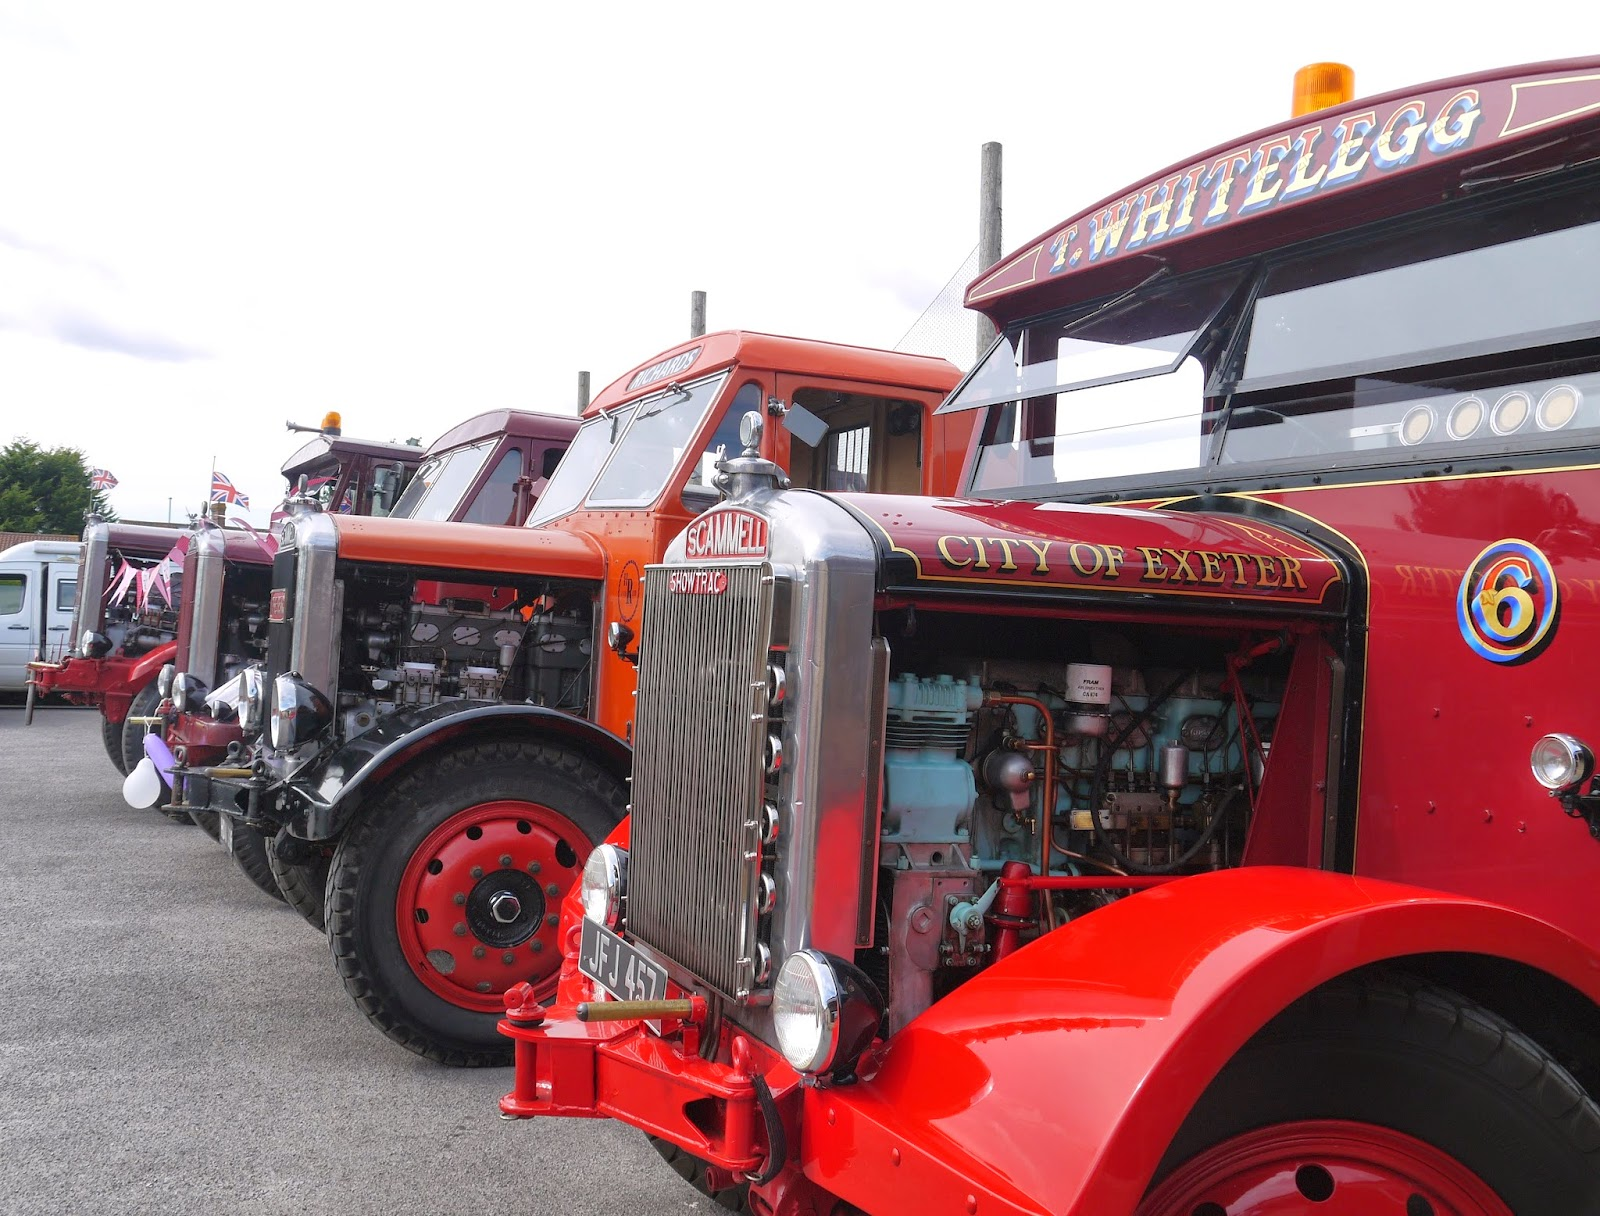 Scammell lorry display